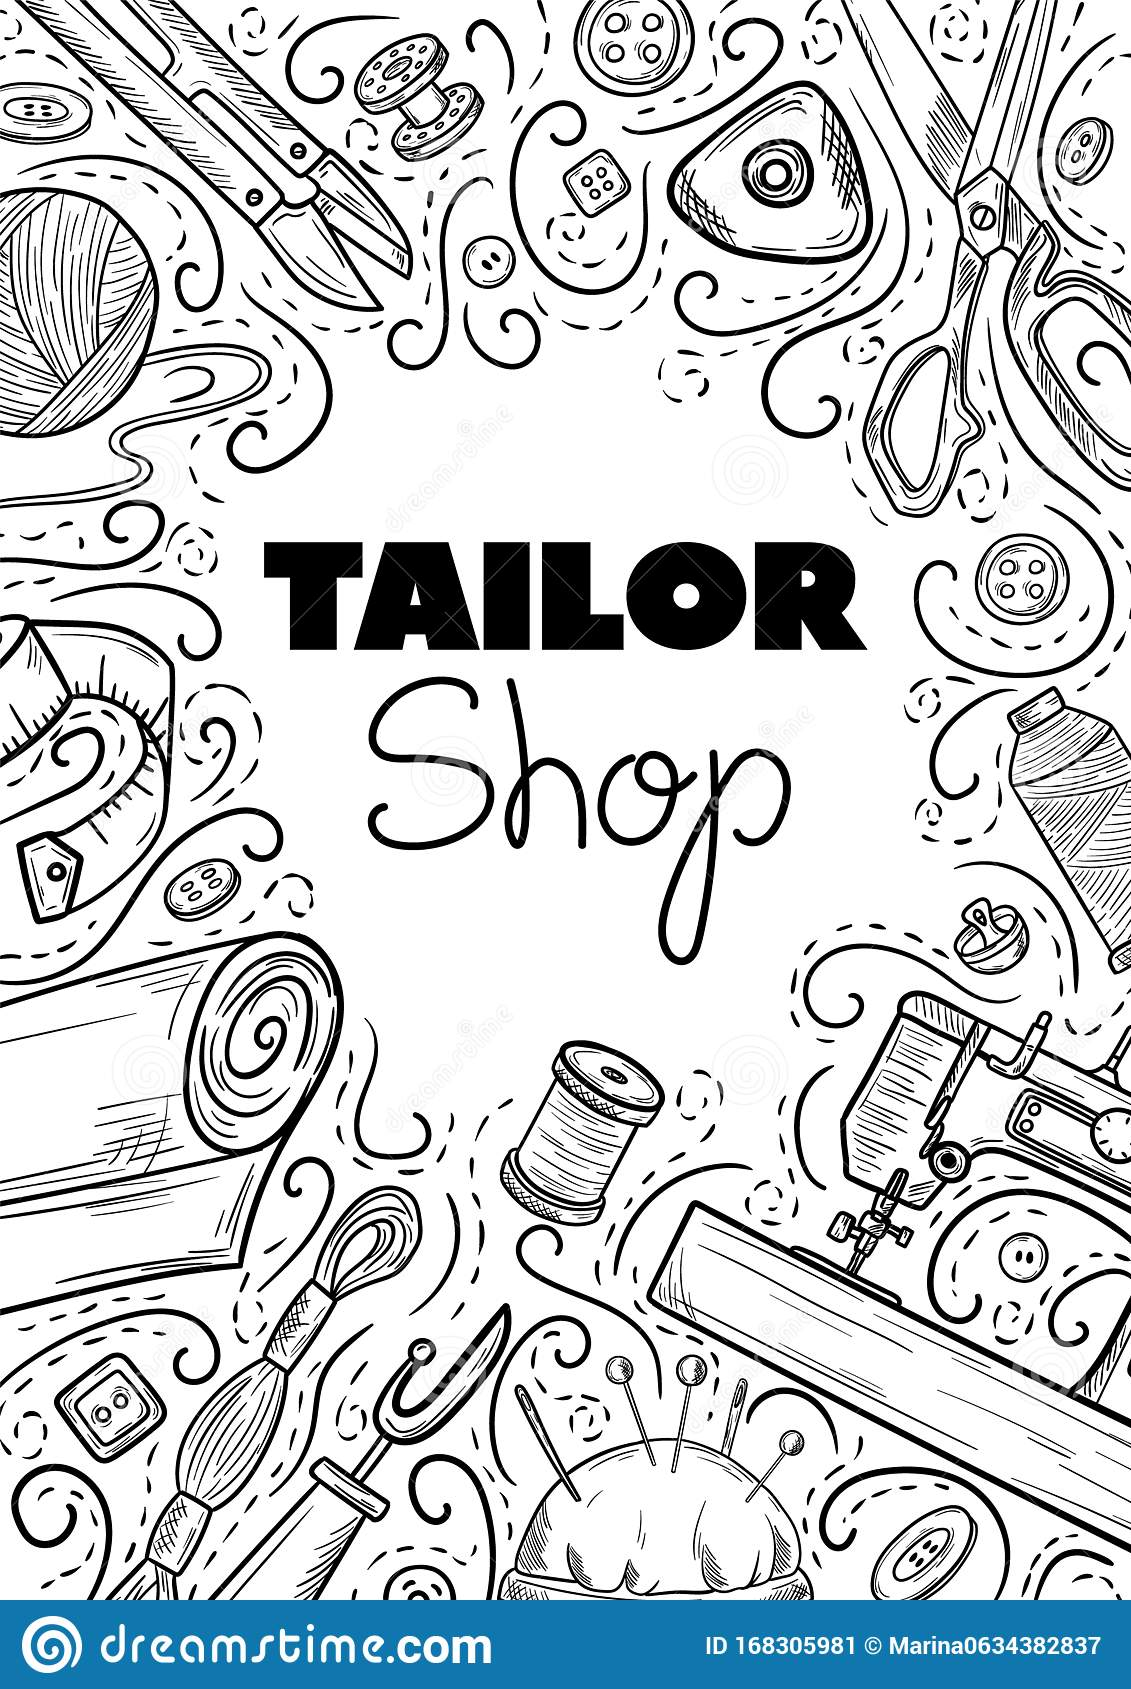 Tailor Or Dressmaker Work And Fashion Designer Atelier Sketch Items Vector Sewing Illustration In Retro Vintage Style Stock Illustration Illustration Of Factory Graphic 168305981